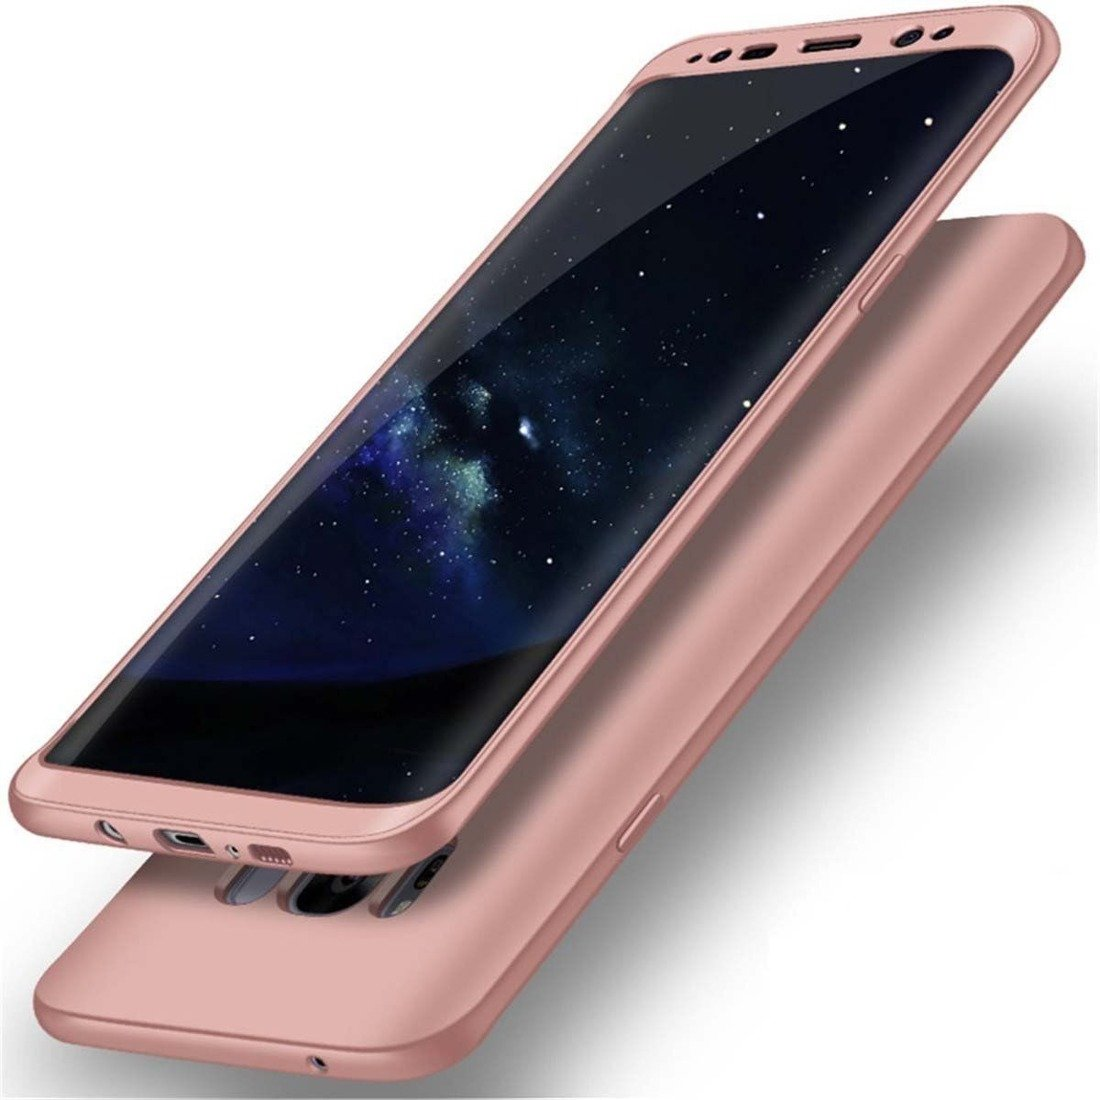 Full 360 Case SAMSUNG A7 2018 pink | CASES \ Back Cases \ Etui 360 SAMSUNG \ GALAXY A7 2018 |